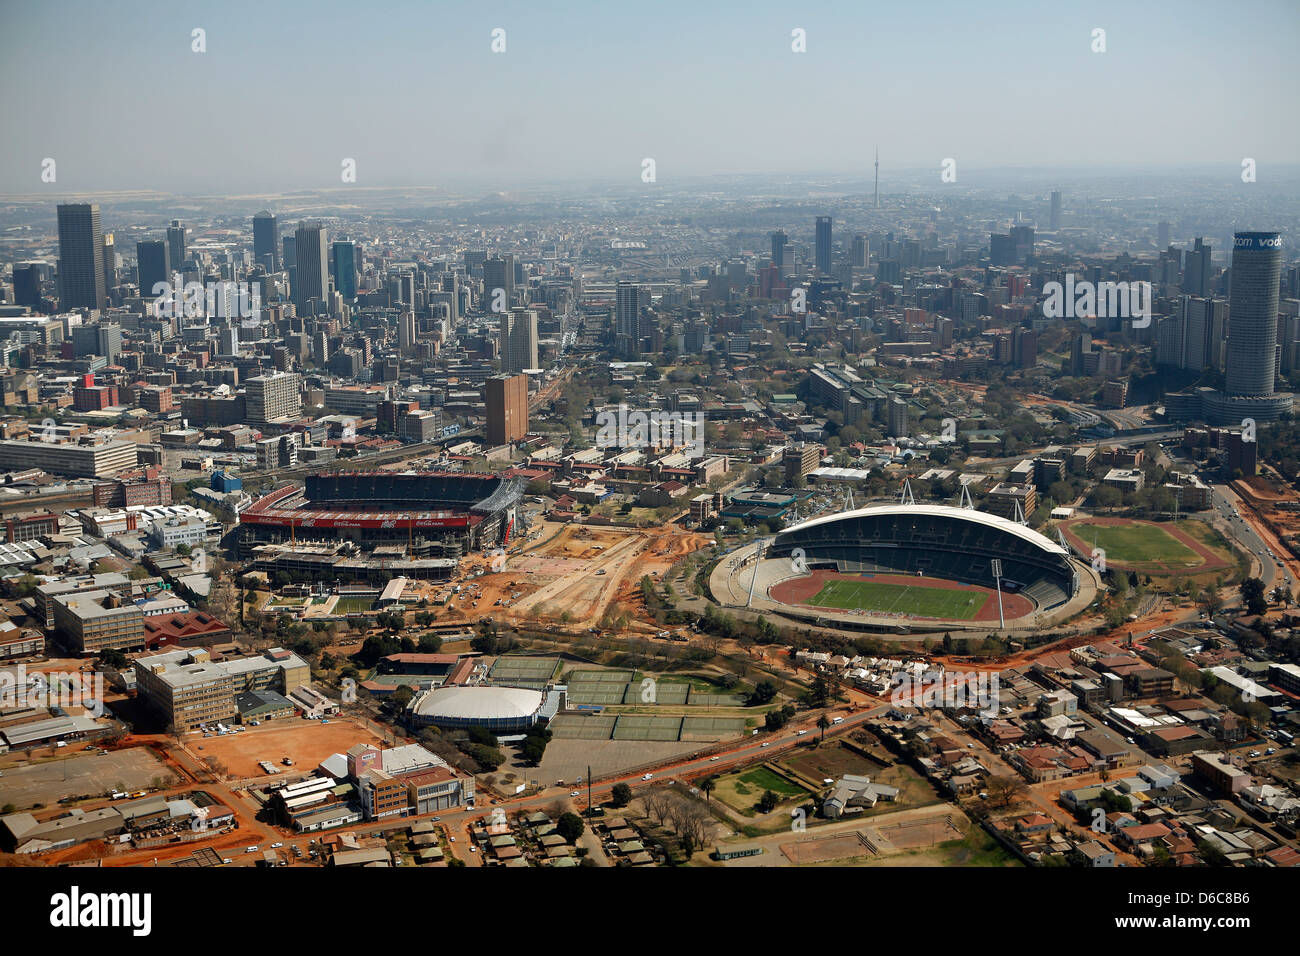 Aerial view of Johannesburg cityscape showing Ellis Park Rugby and Johannesburg Stadiums - Stock Image